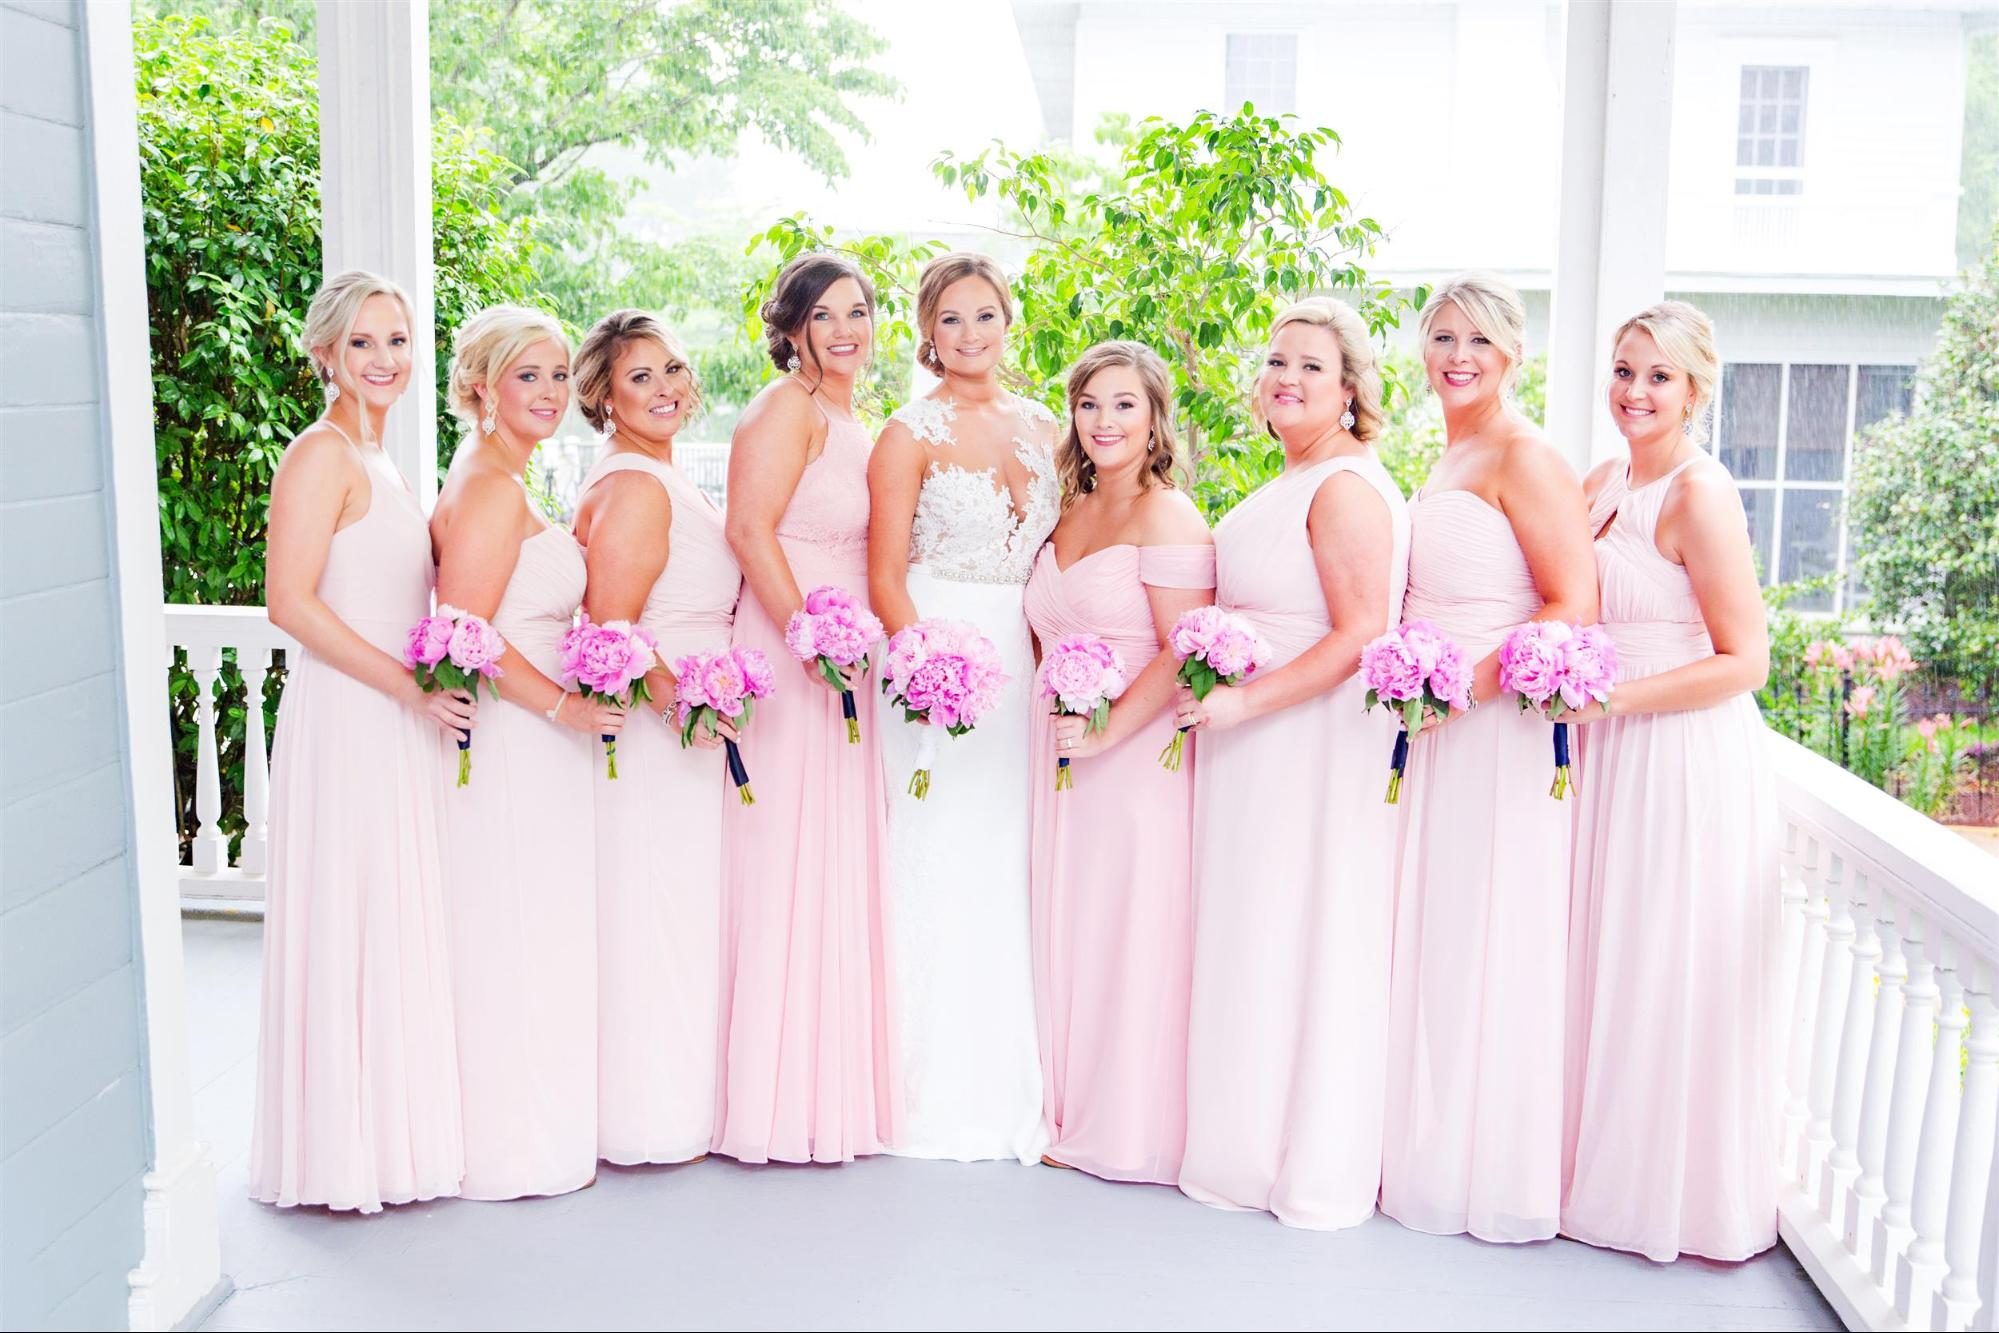 Rewear Your Bridesmaid Dresses - Mix and Match Bridal Party